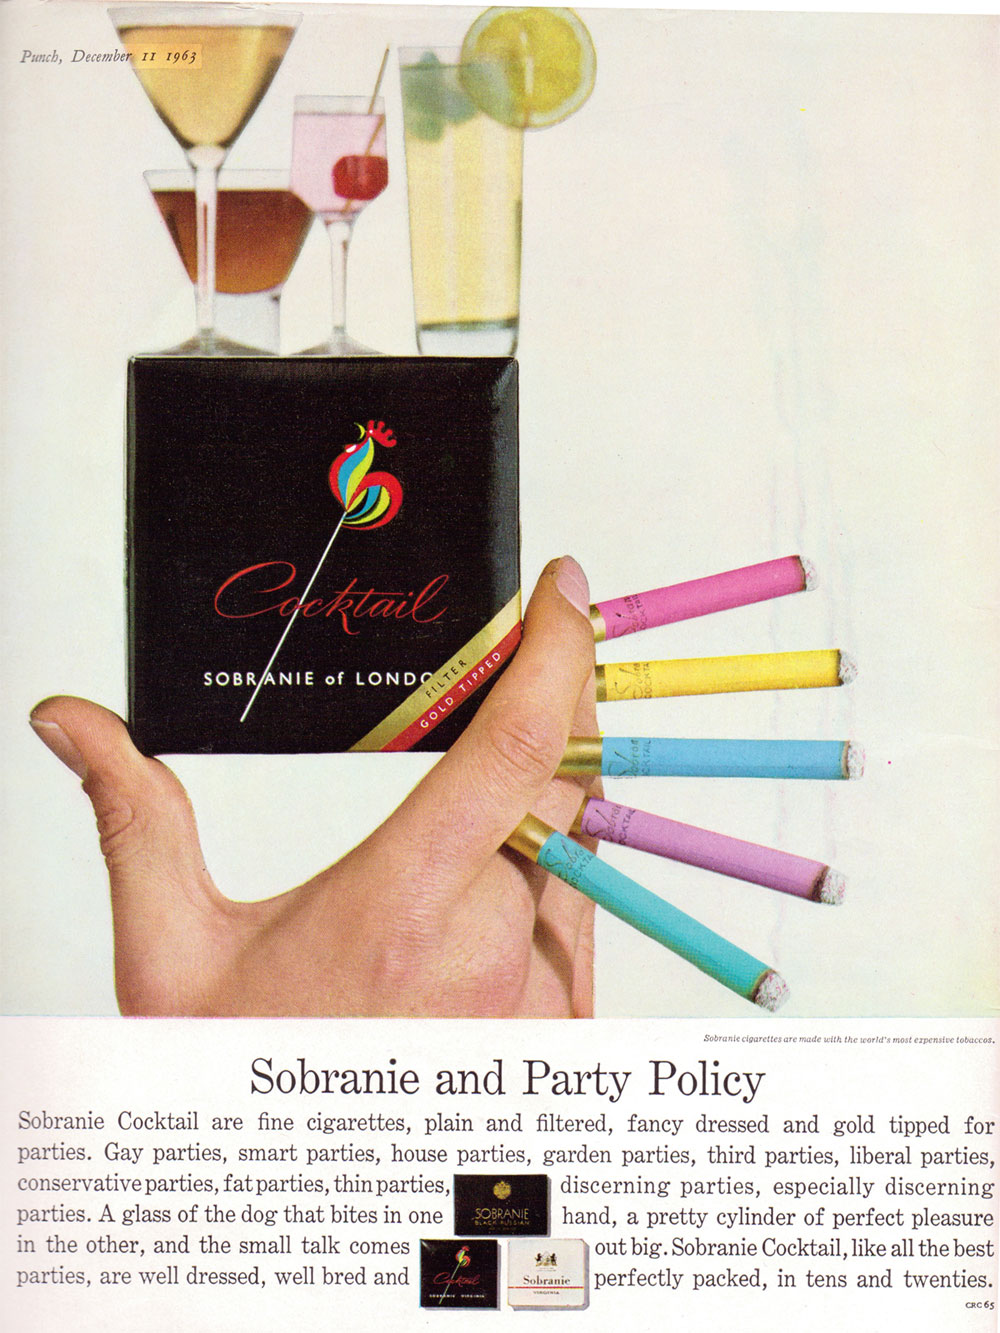 Sobranie of London